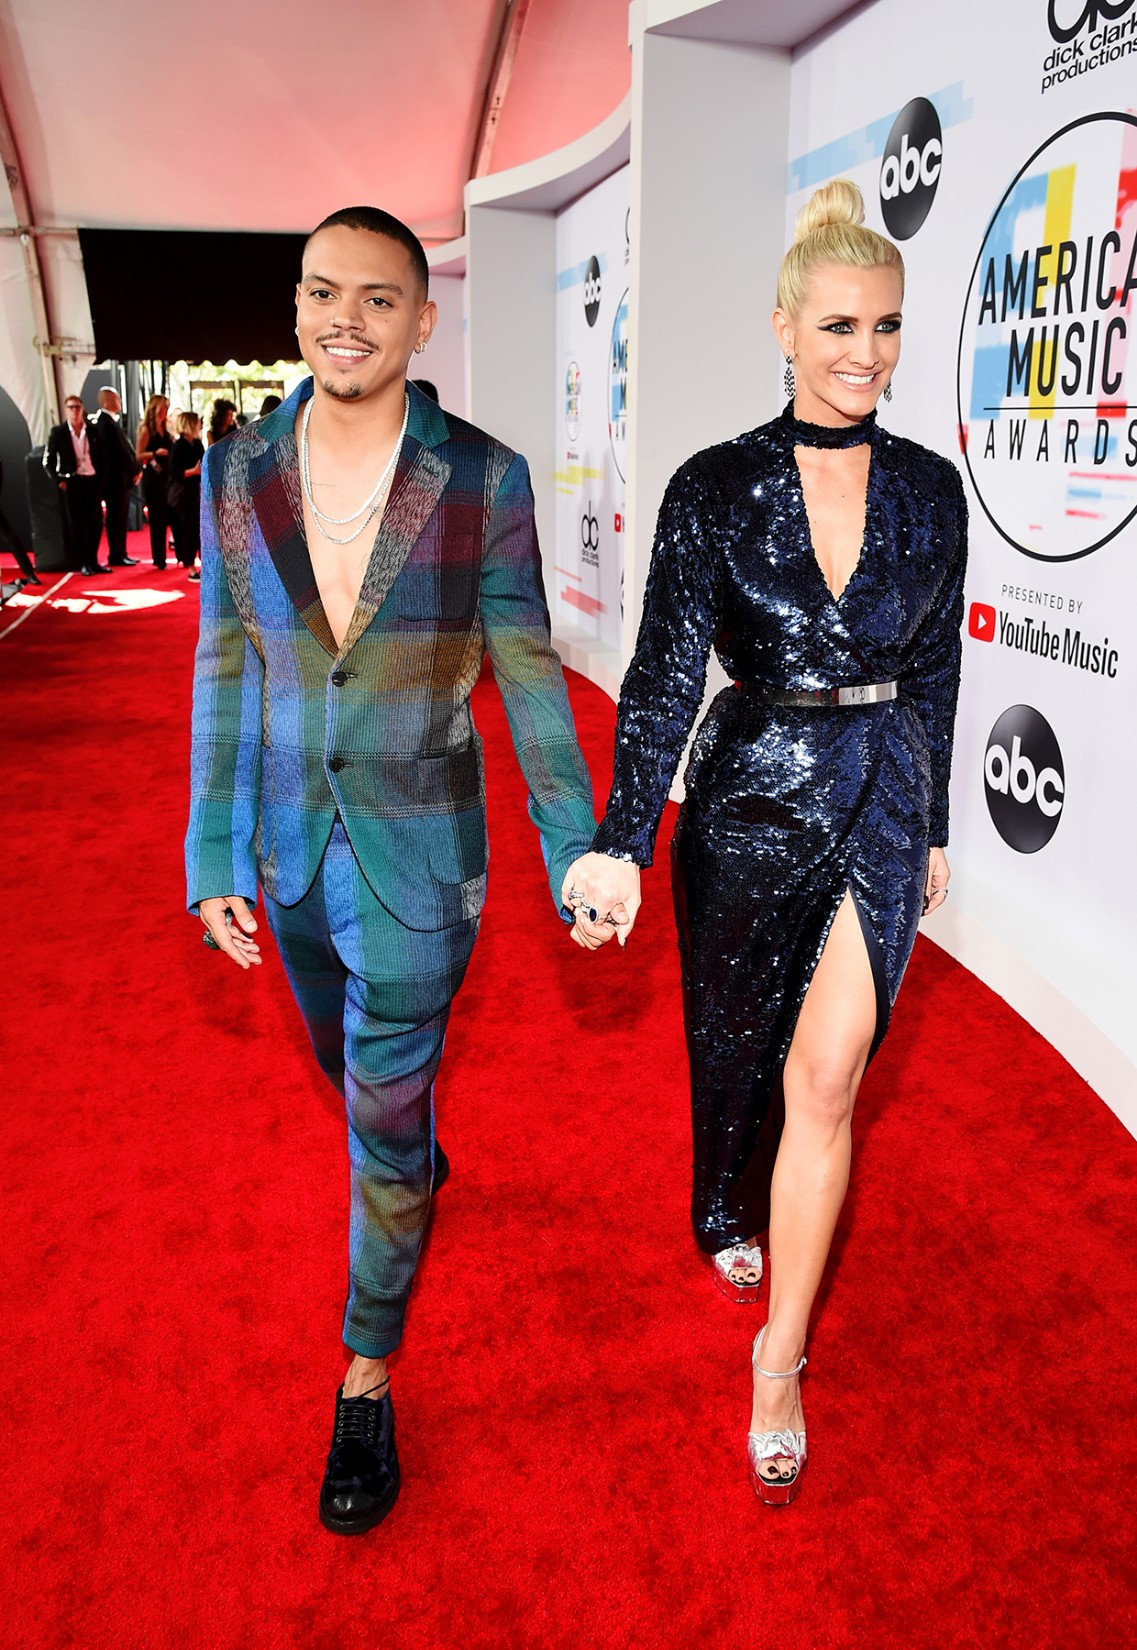 Evan Ross and Ashlee Simpson, American Music Awards